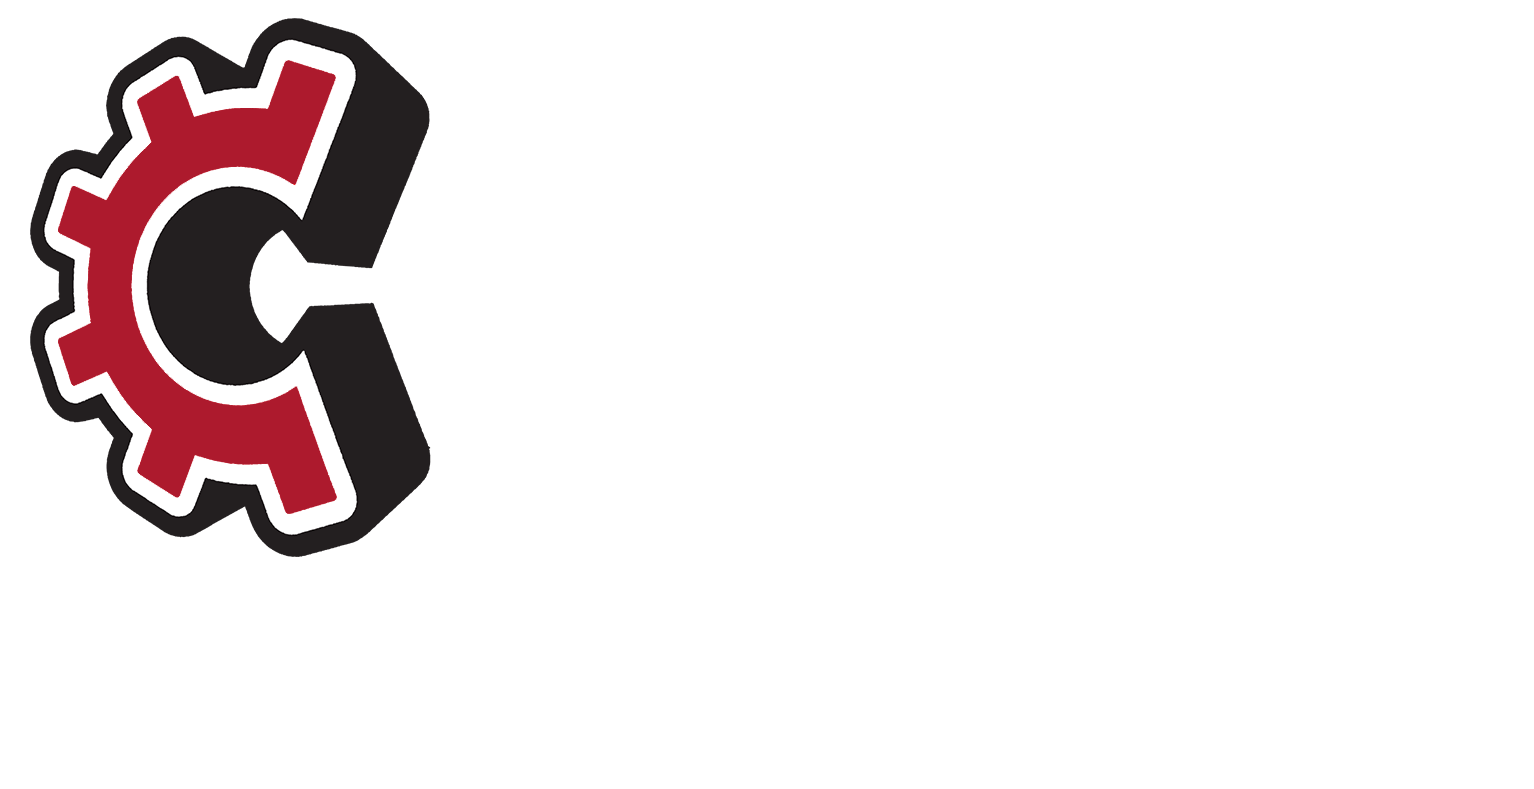 Catawba Careers